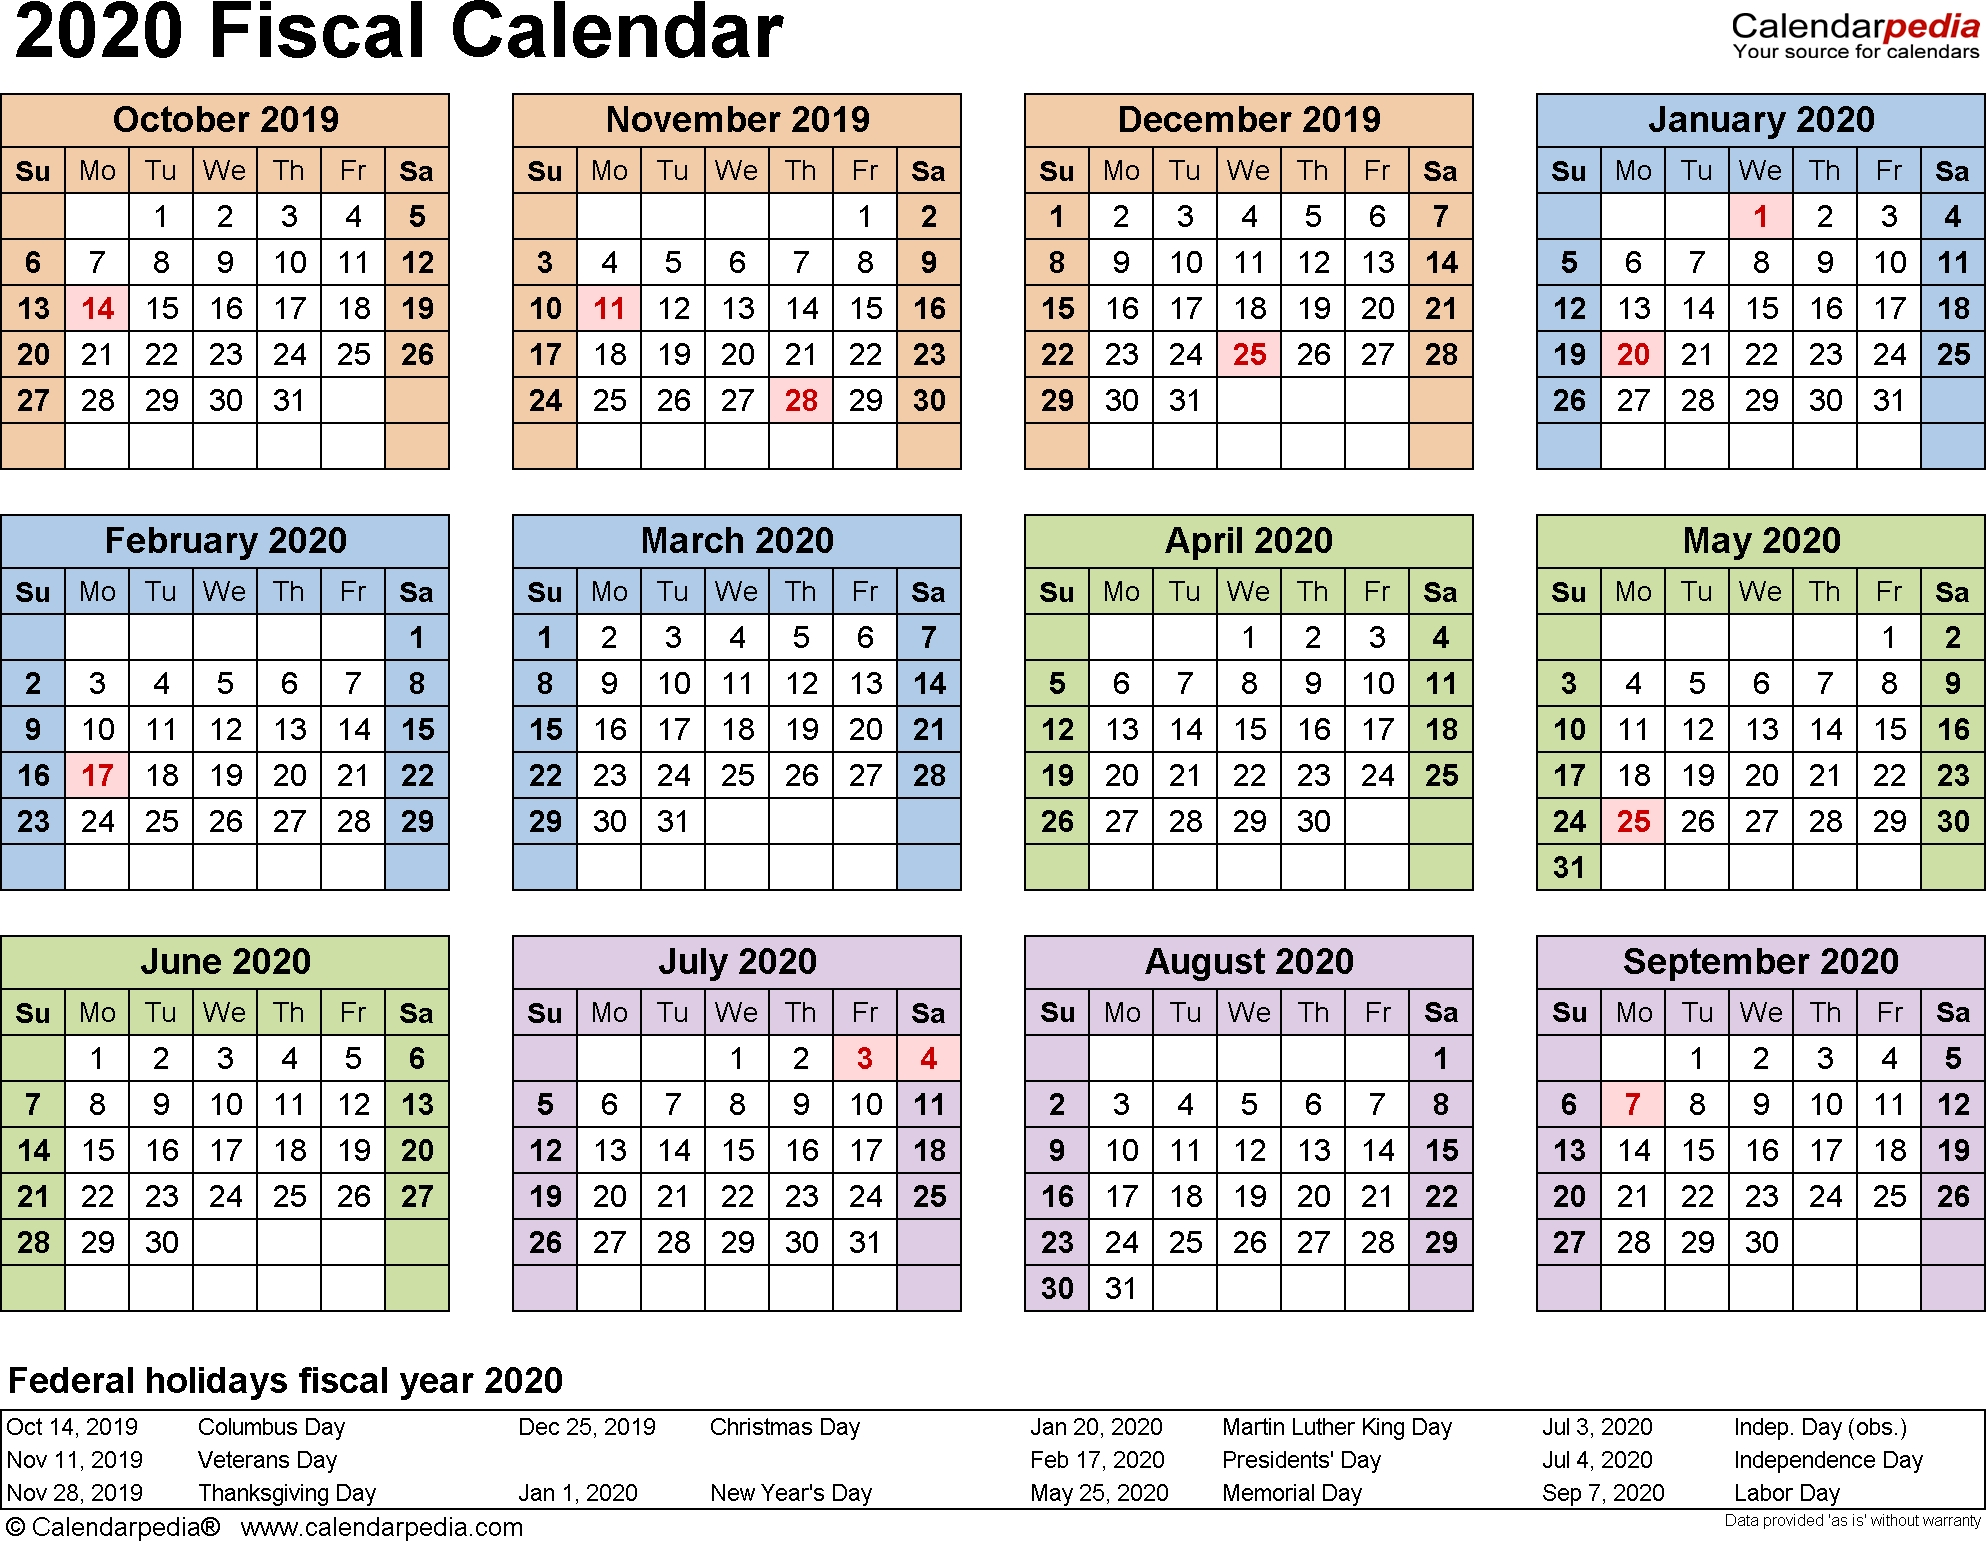 Fiscal Calendars 2020 As Free Printable Word Templates with Tax Calendar 2019/2020